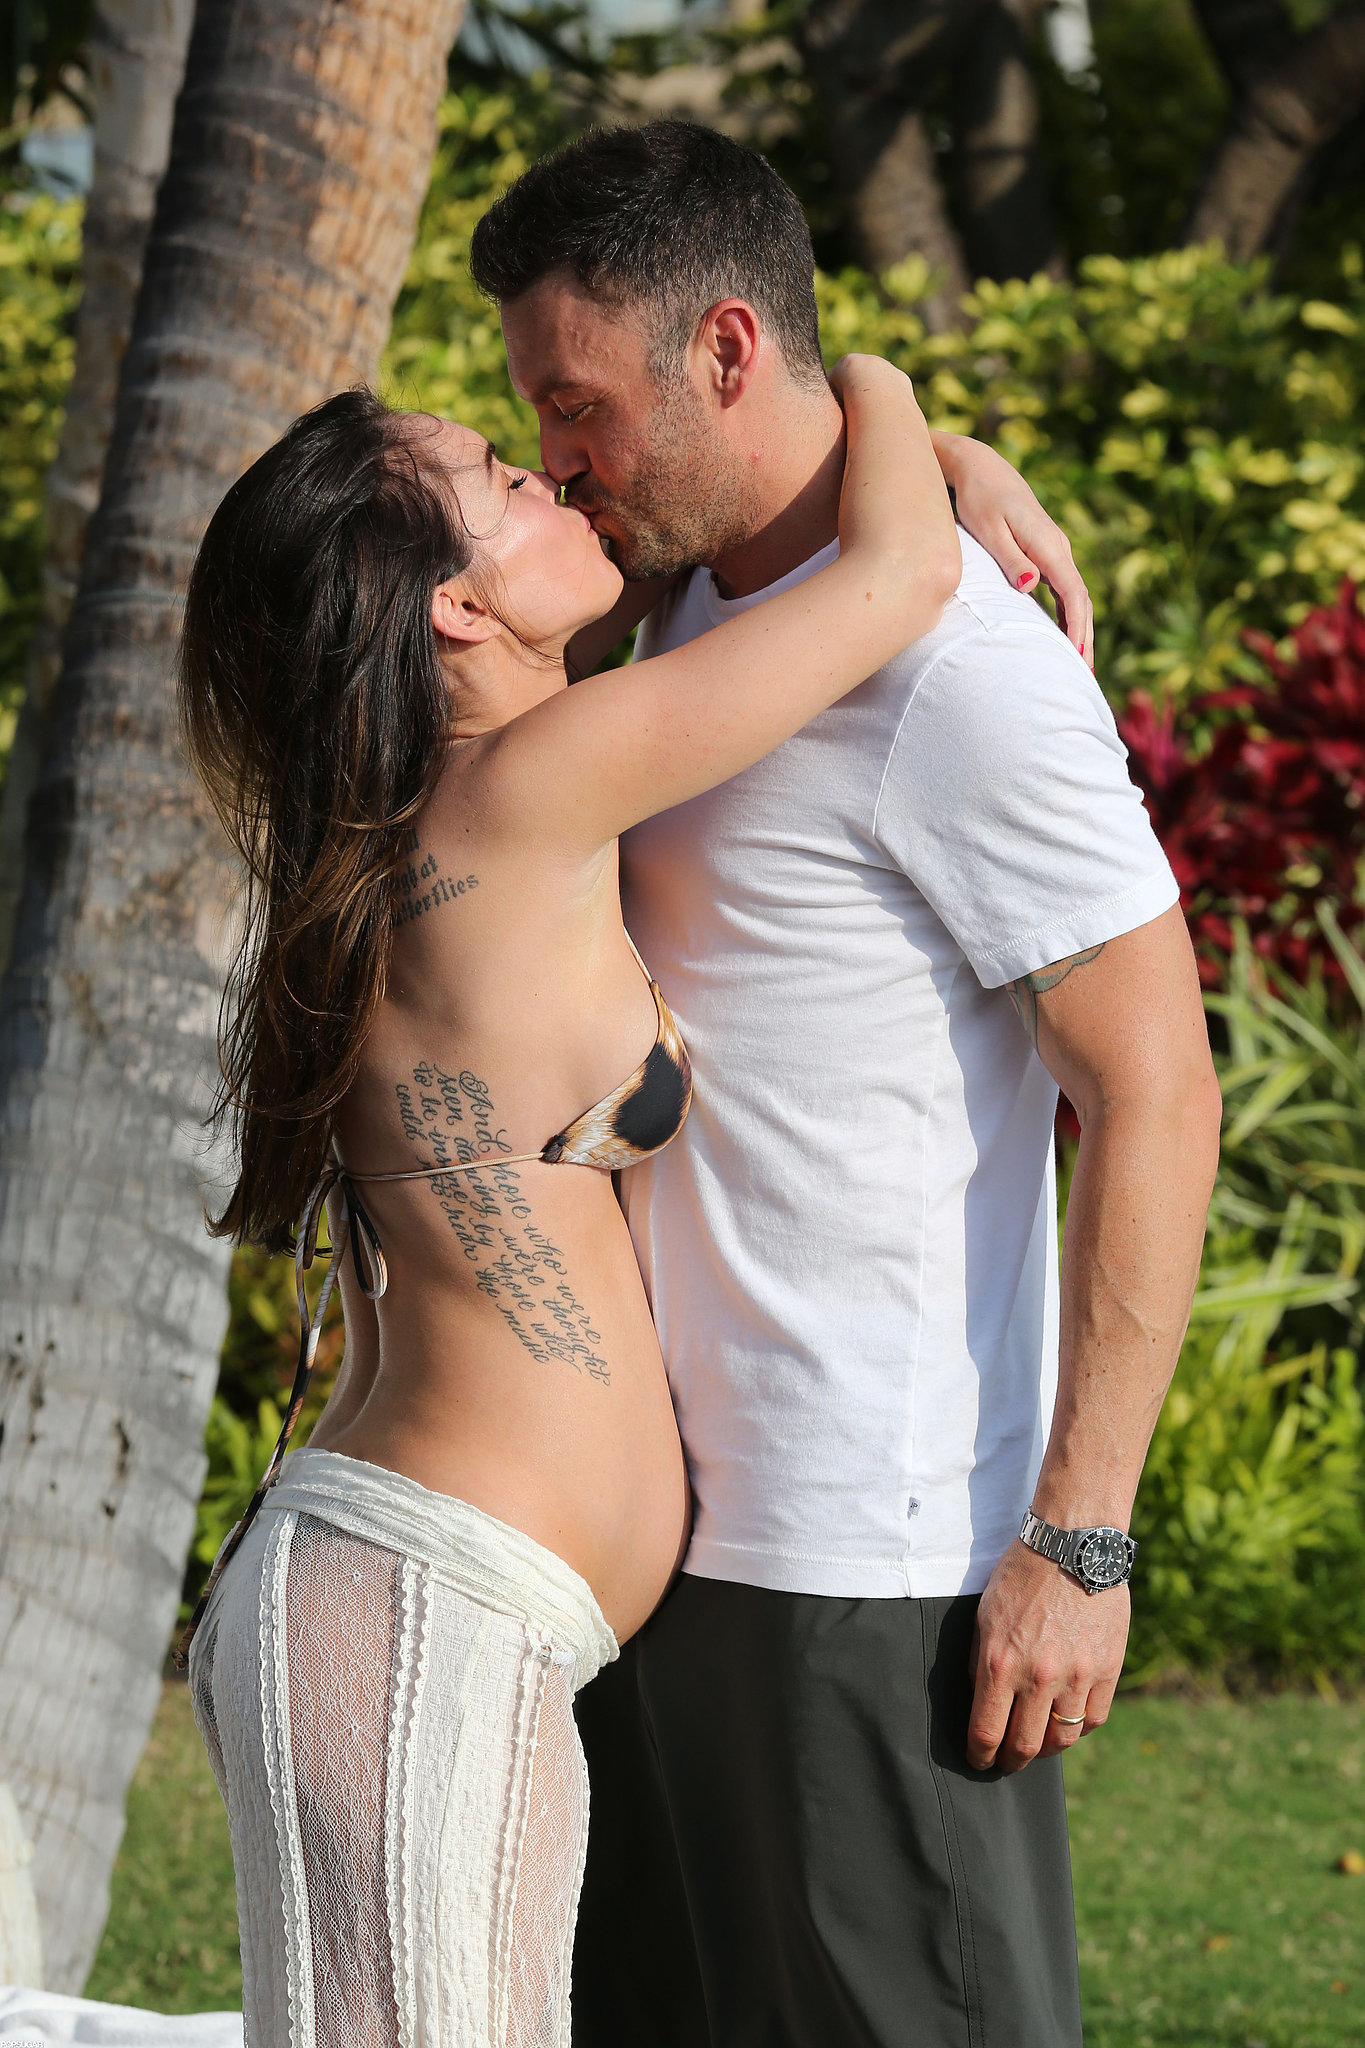 Pregnant Megan Fox planted a passionate kiss on Brian Austin Green on an escape to Hawaii in June 2012.